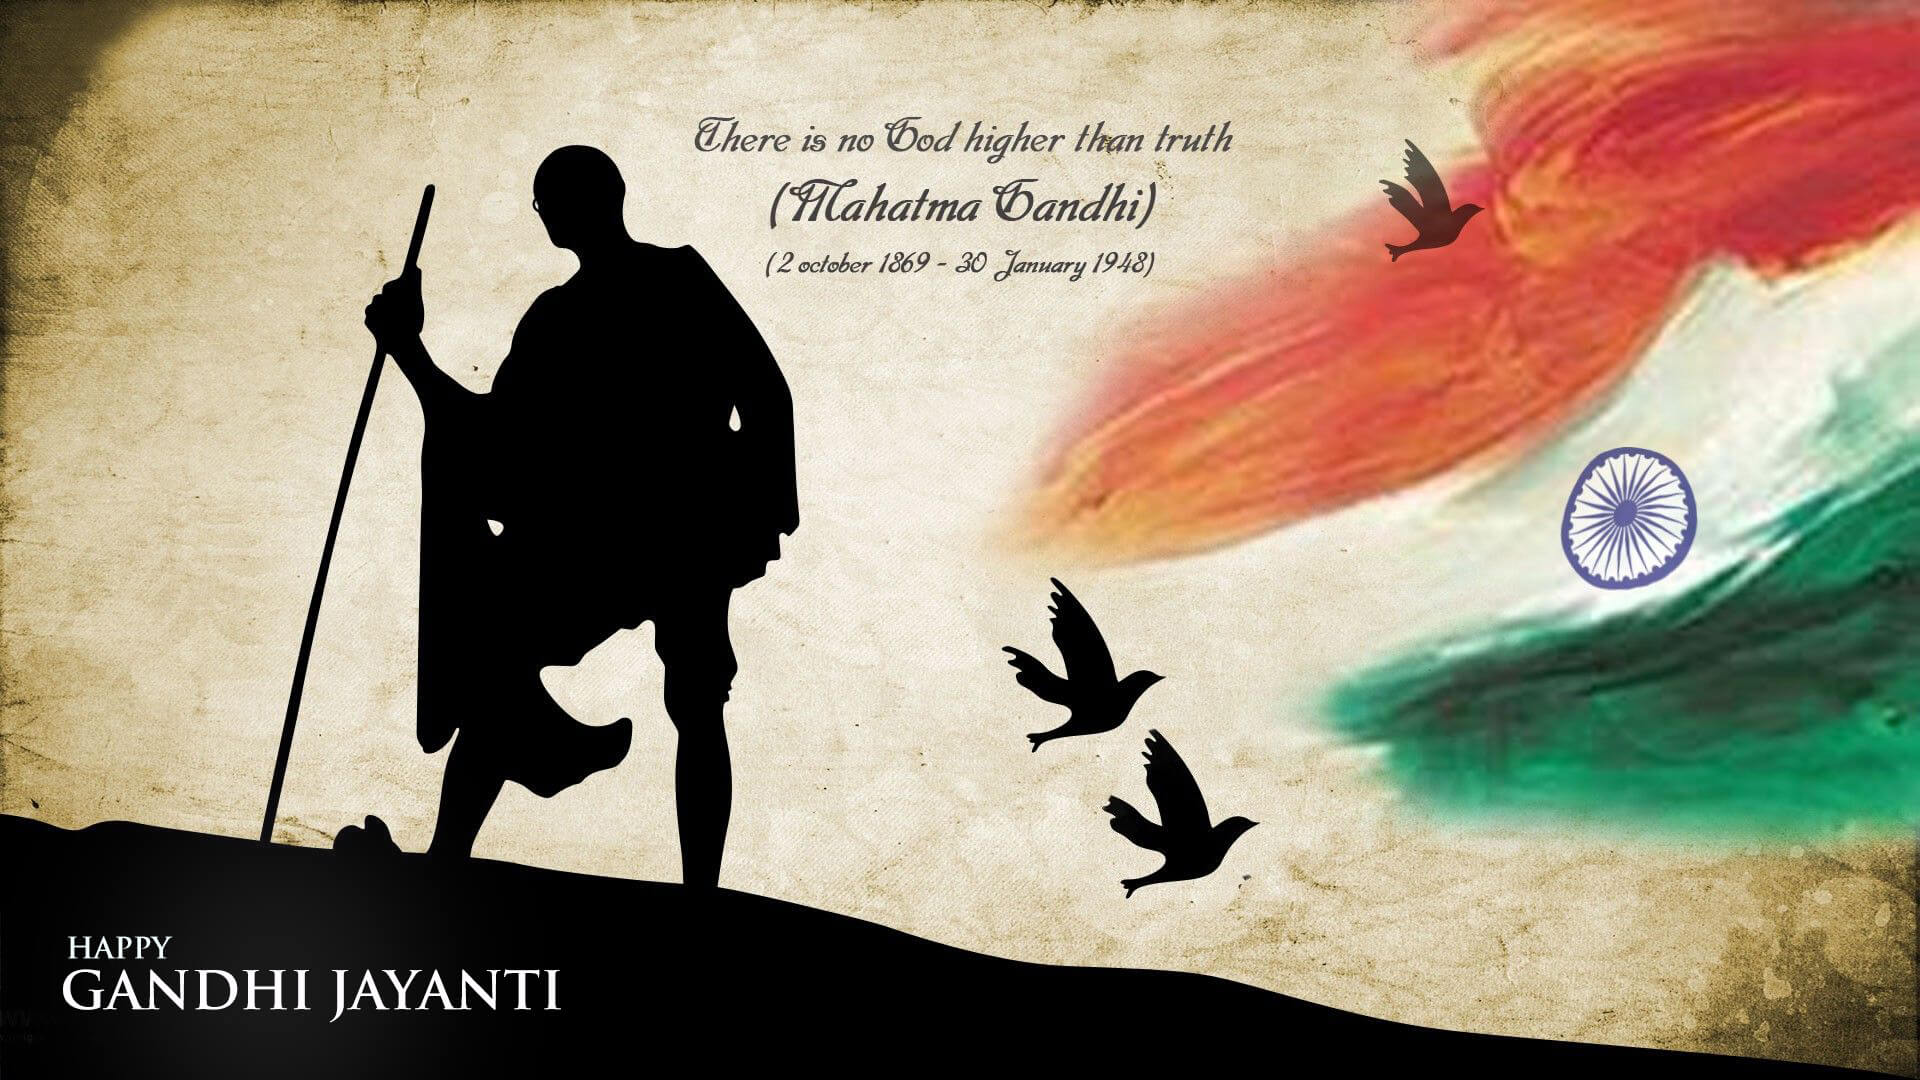 gandhi jayanti wishes october 2nd new hd wallpaper